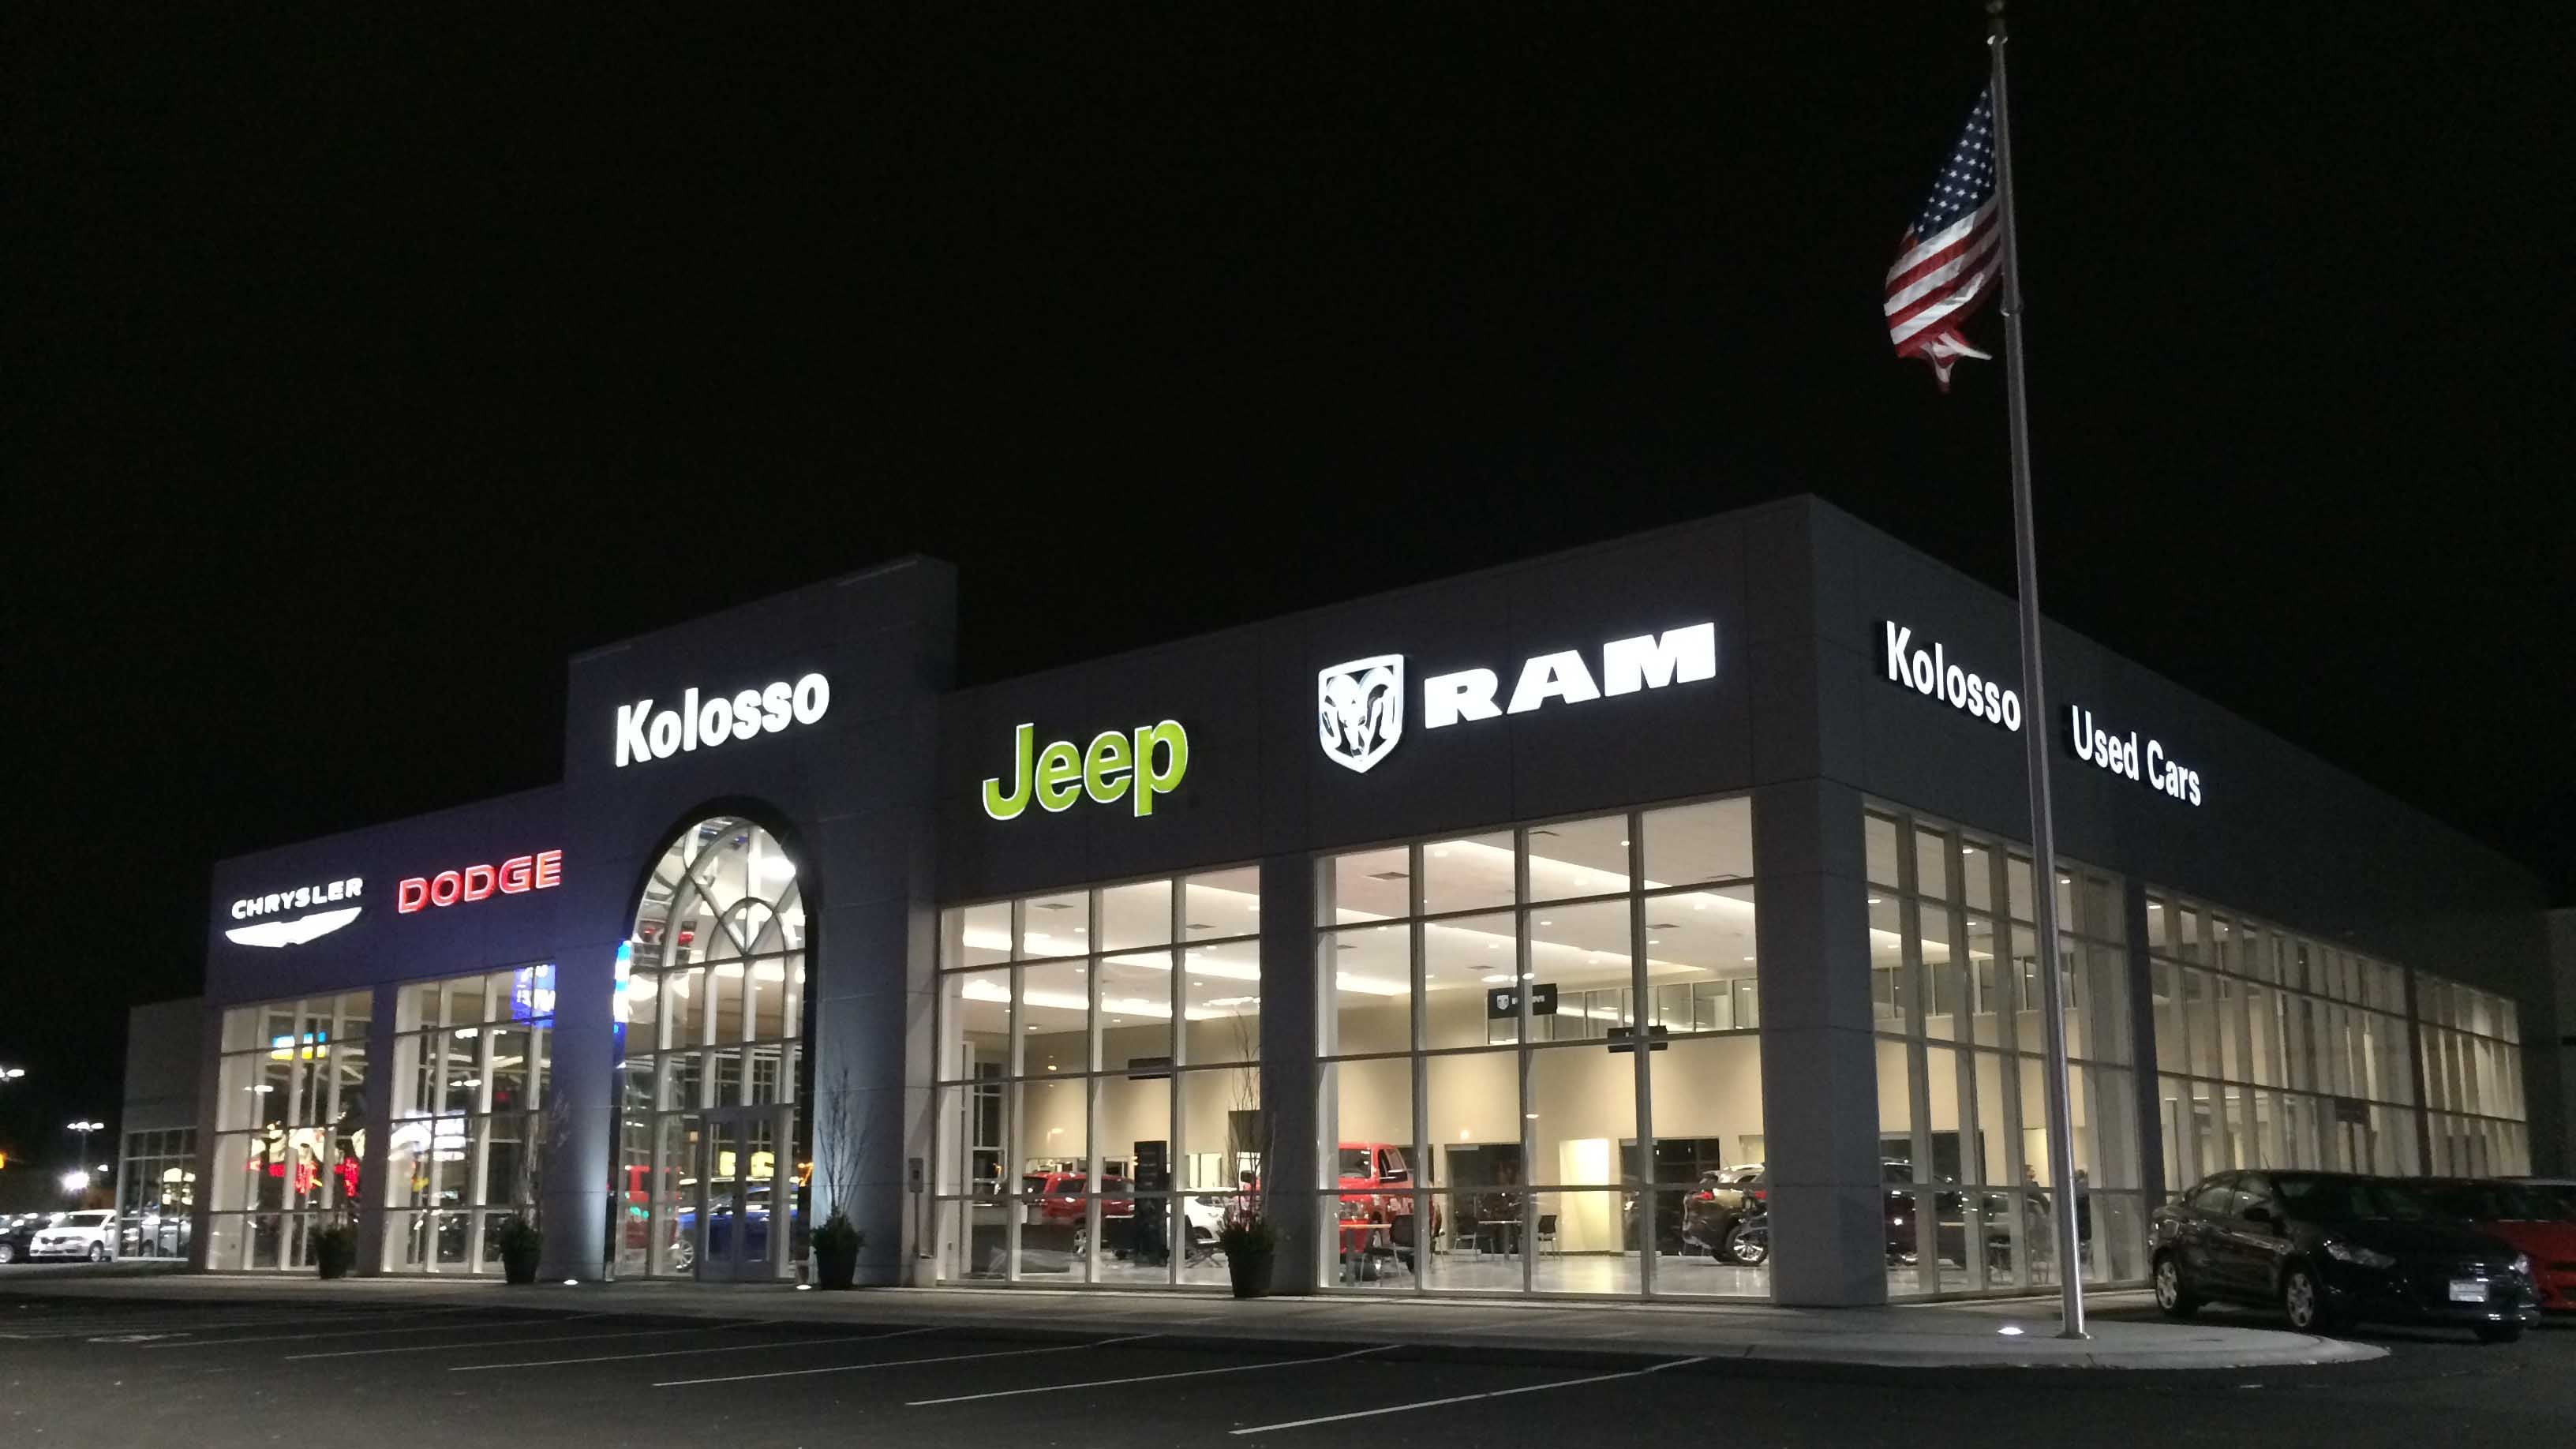 The kolosso chrysler jeep dodge ram service auto repair shop in appleton wisconsin